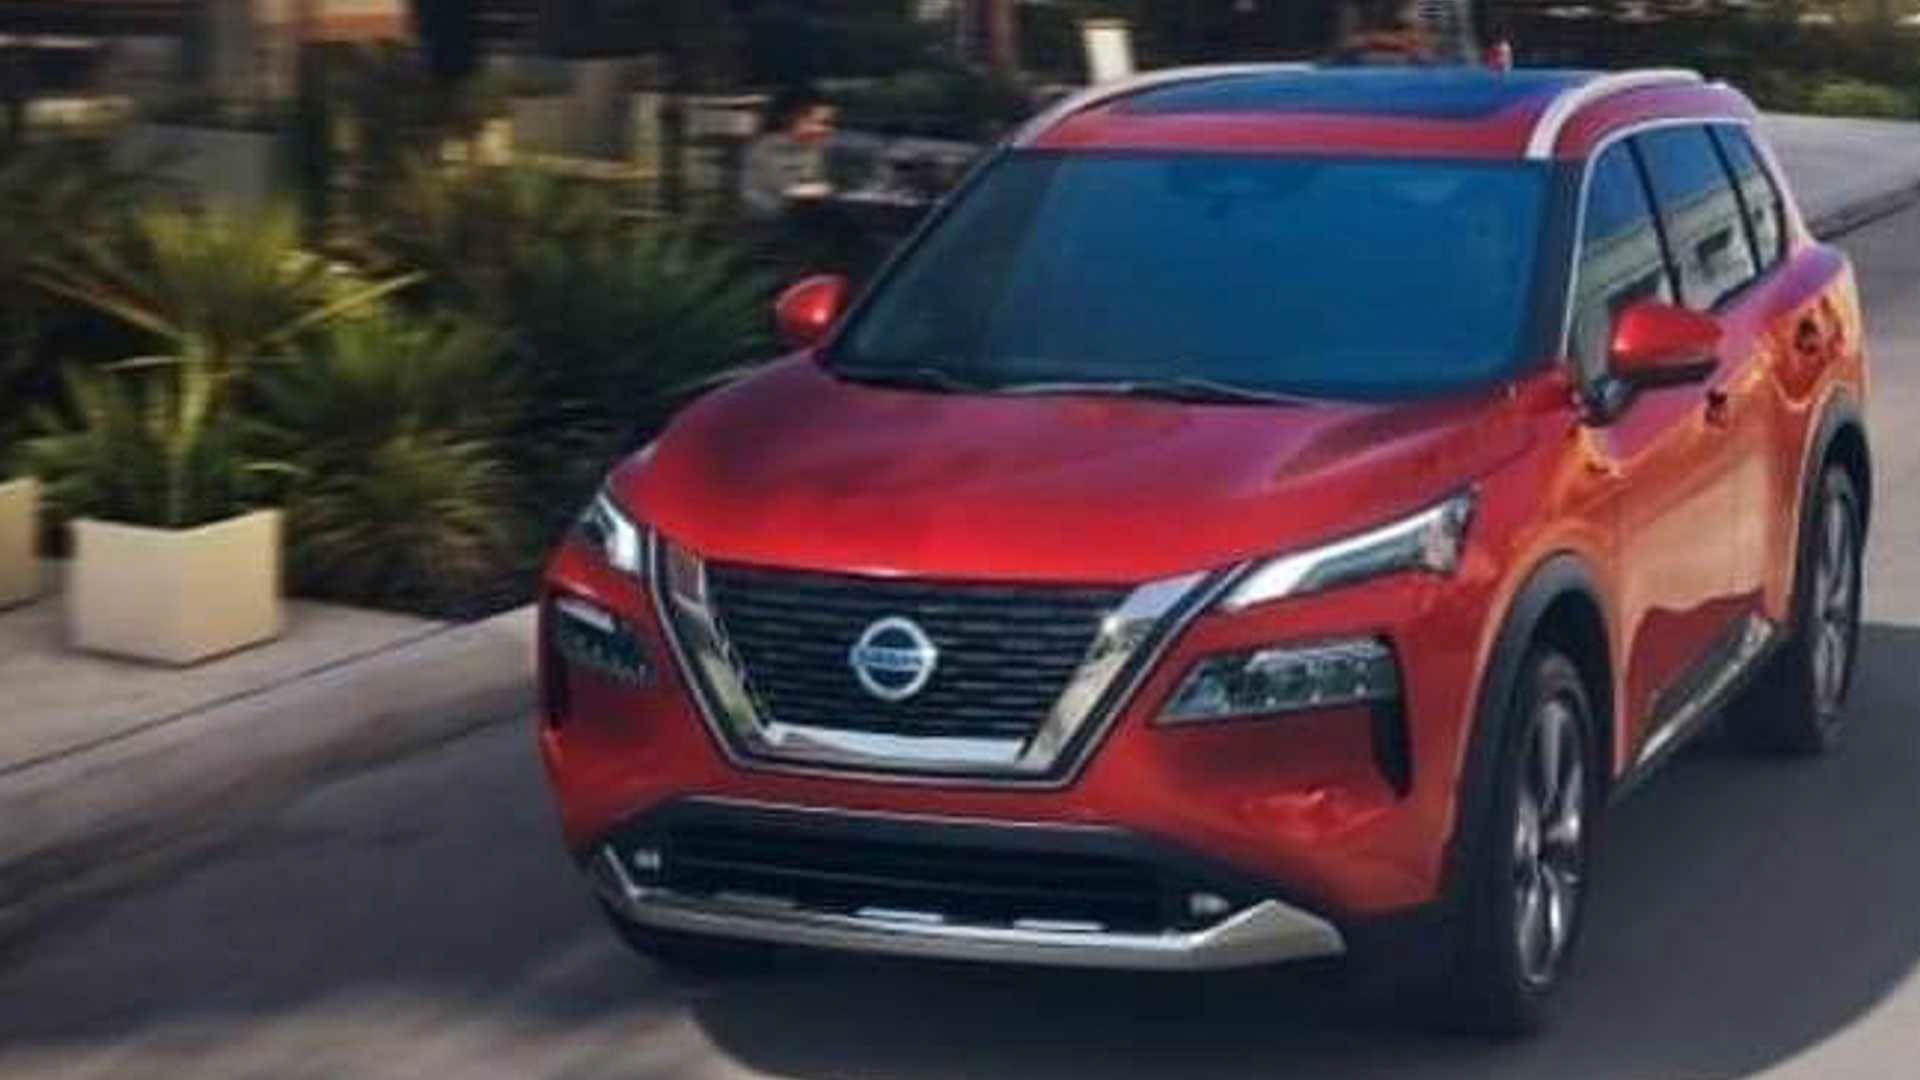 Next-Gen 2021 Nissan Rogue SUV Leaked Online With Stylish Exterior